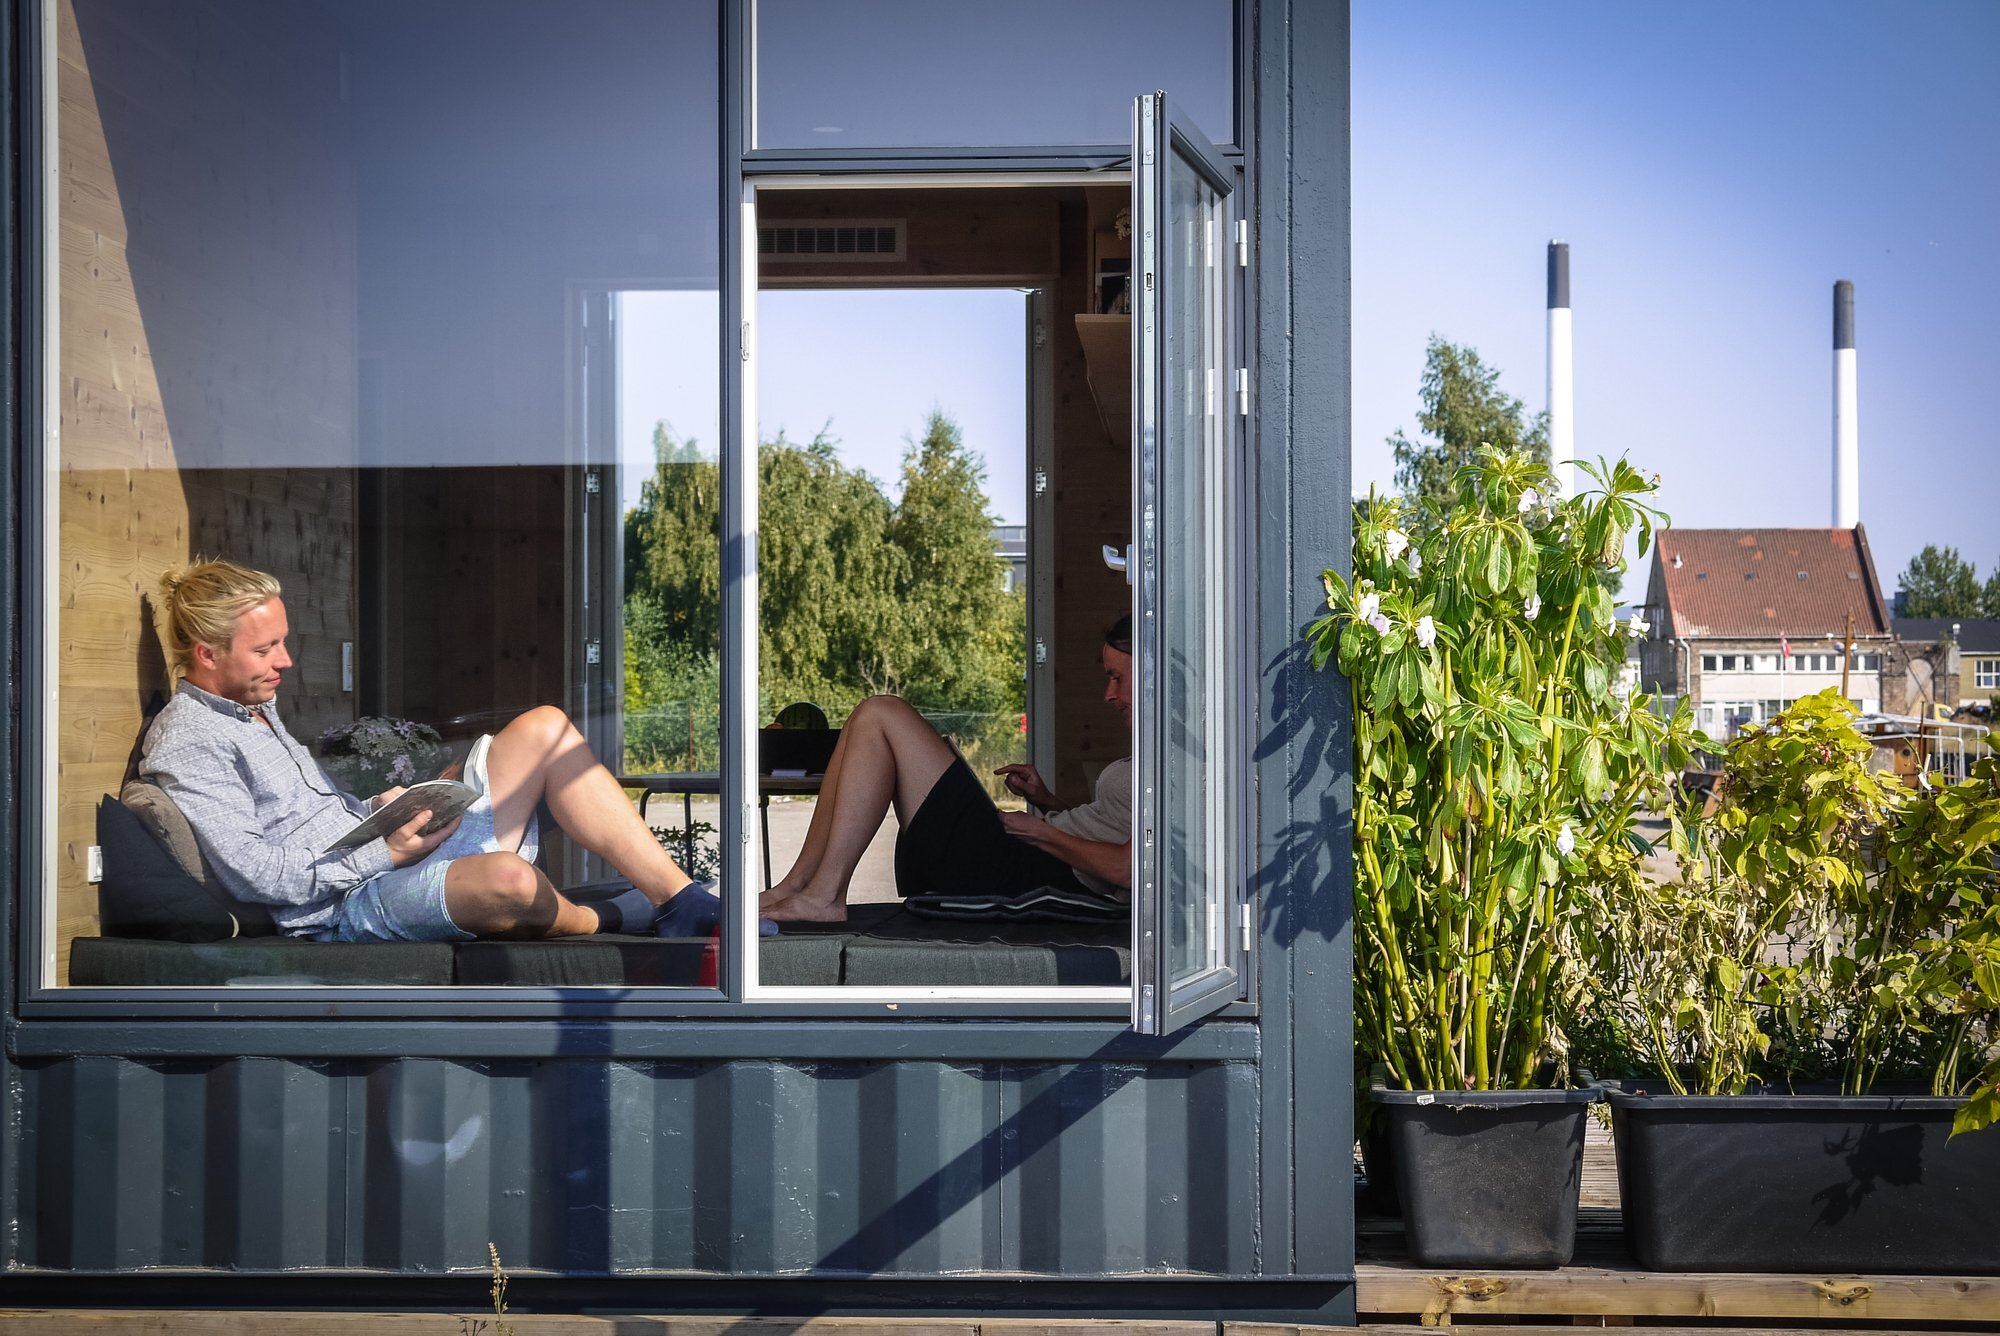 Student Container Housing - CPH Containers - Vandkunsten Architects - Copenhagen - By The Window - Humble Homes